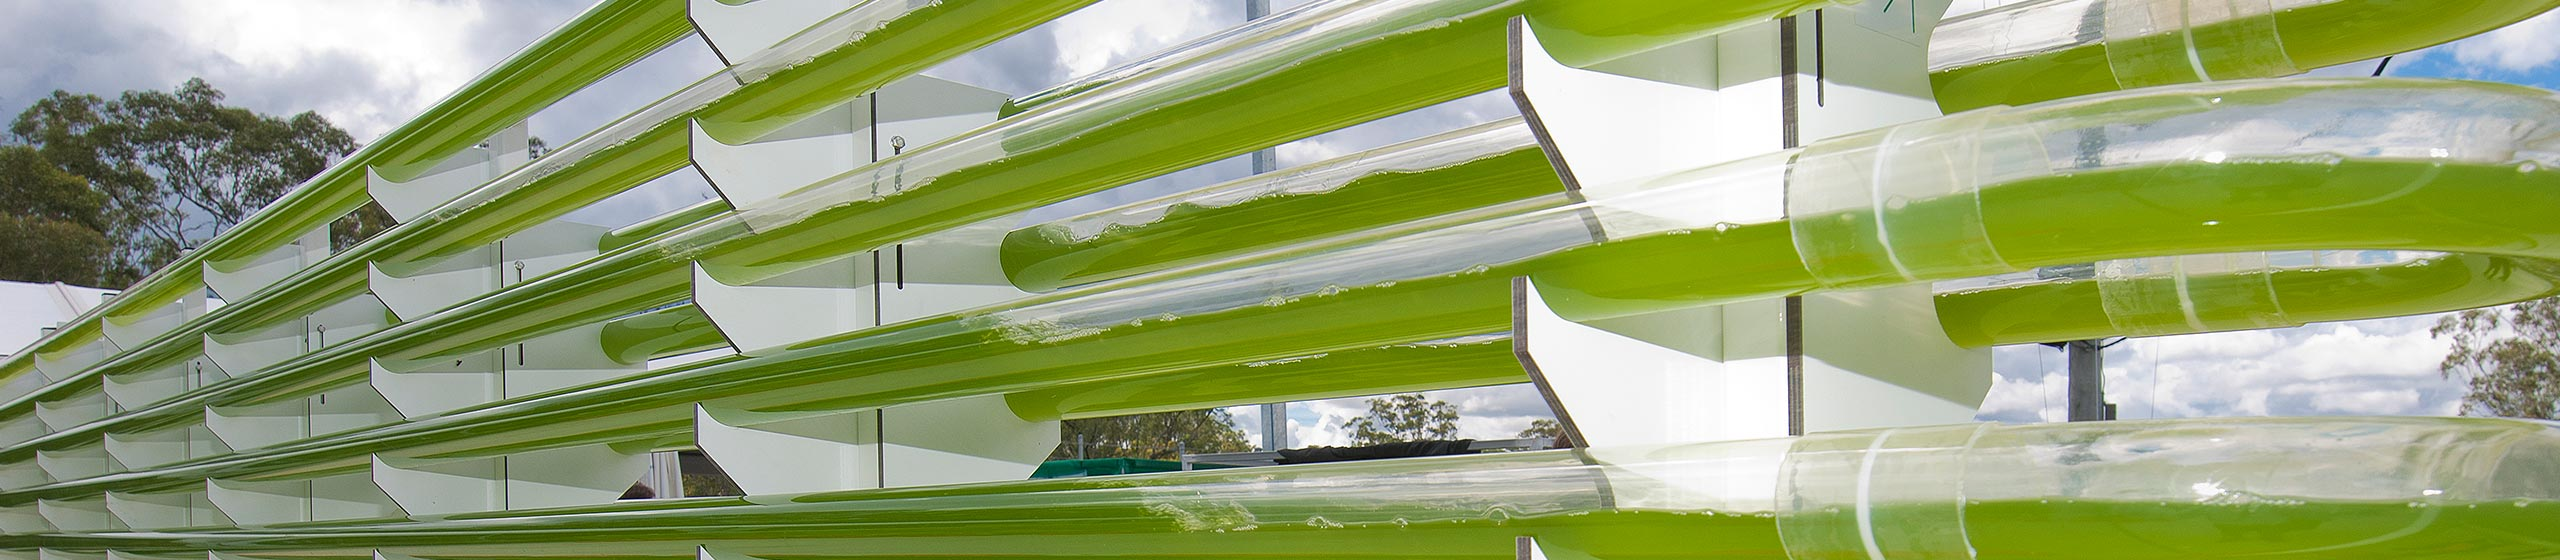 Photobioreactor at Centre for Solar Biotechnology Facility